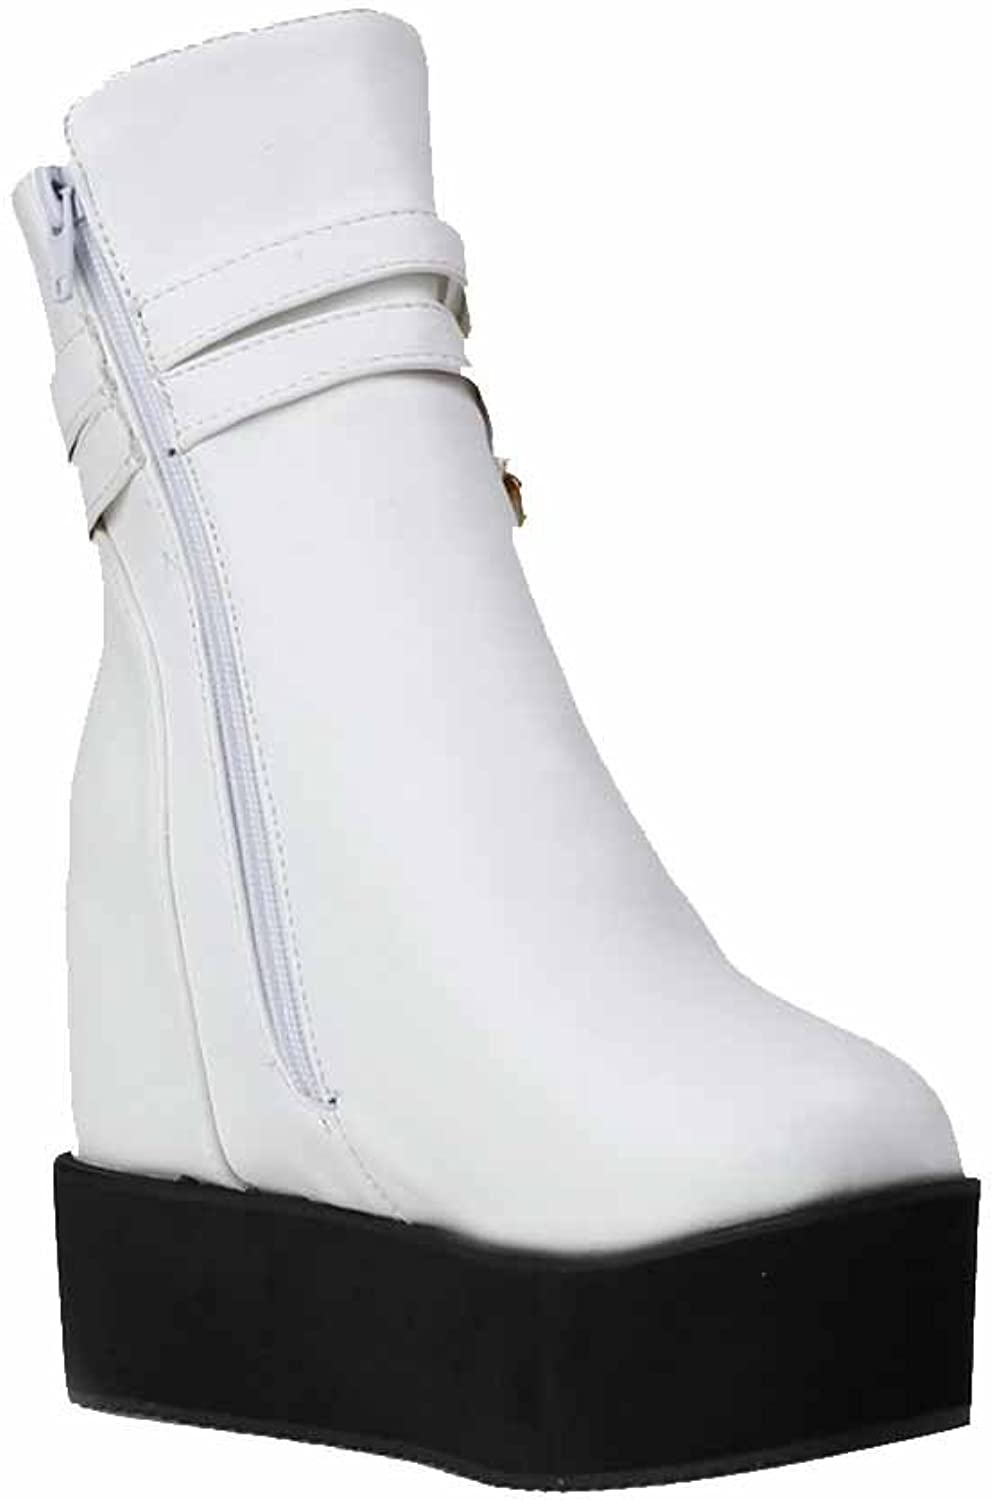 AllhqFashion Women's Soft Material Round Closed Toe High Heels Zipper Solid Boots